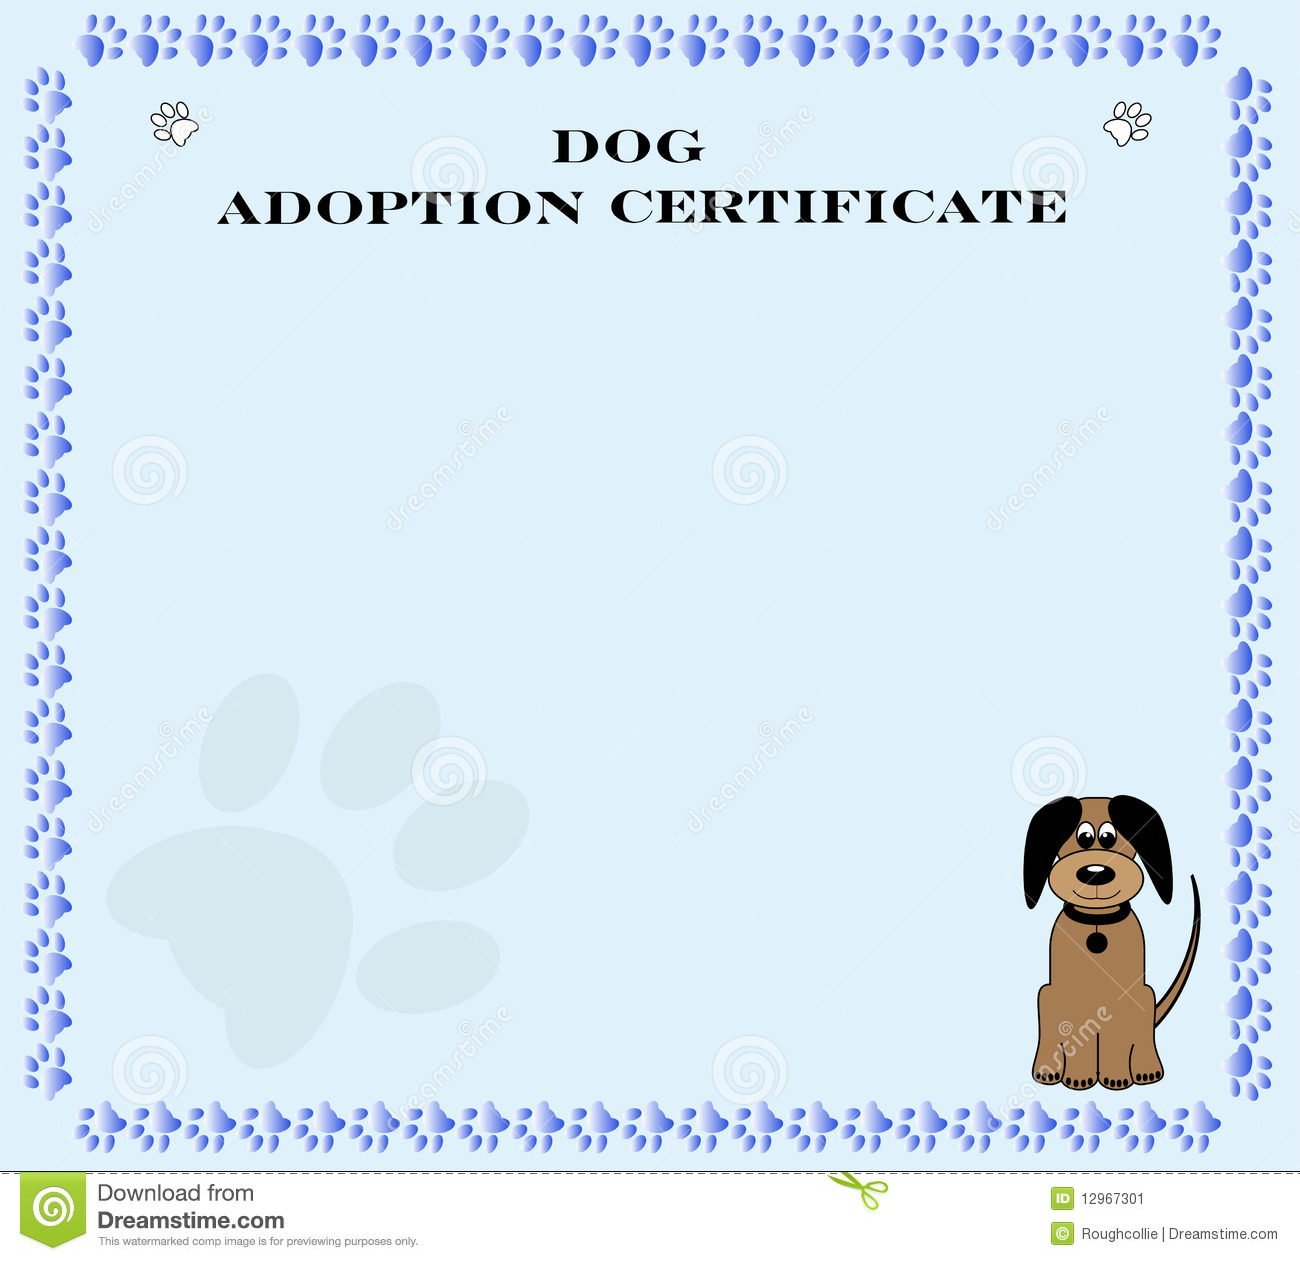 Pretty blue paw print dog adoption certificate for rescue / shelter ...